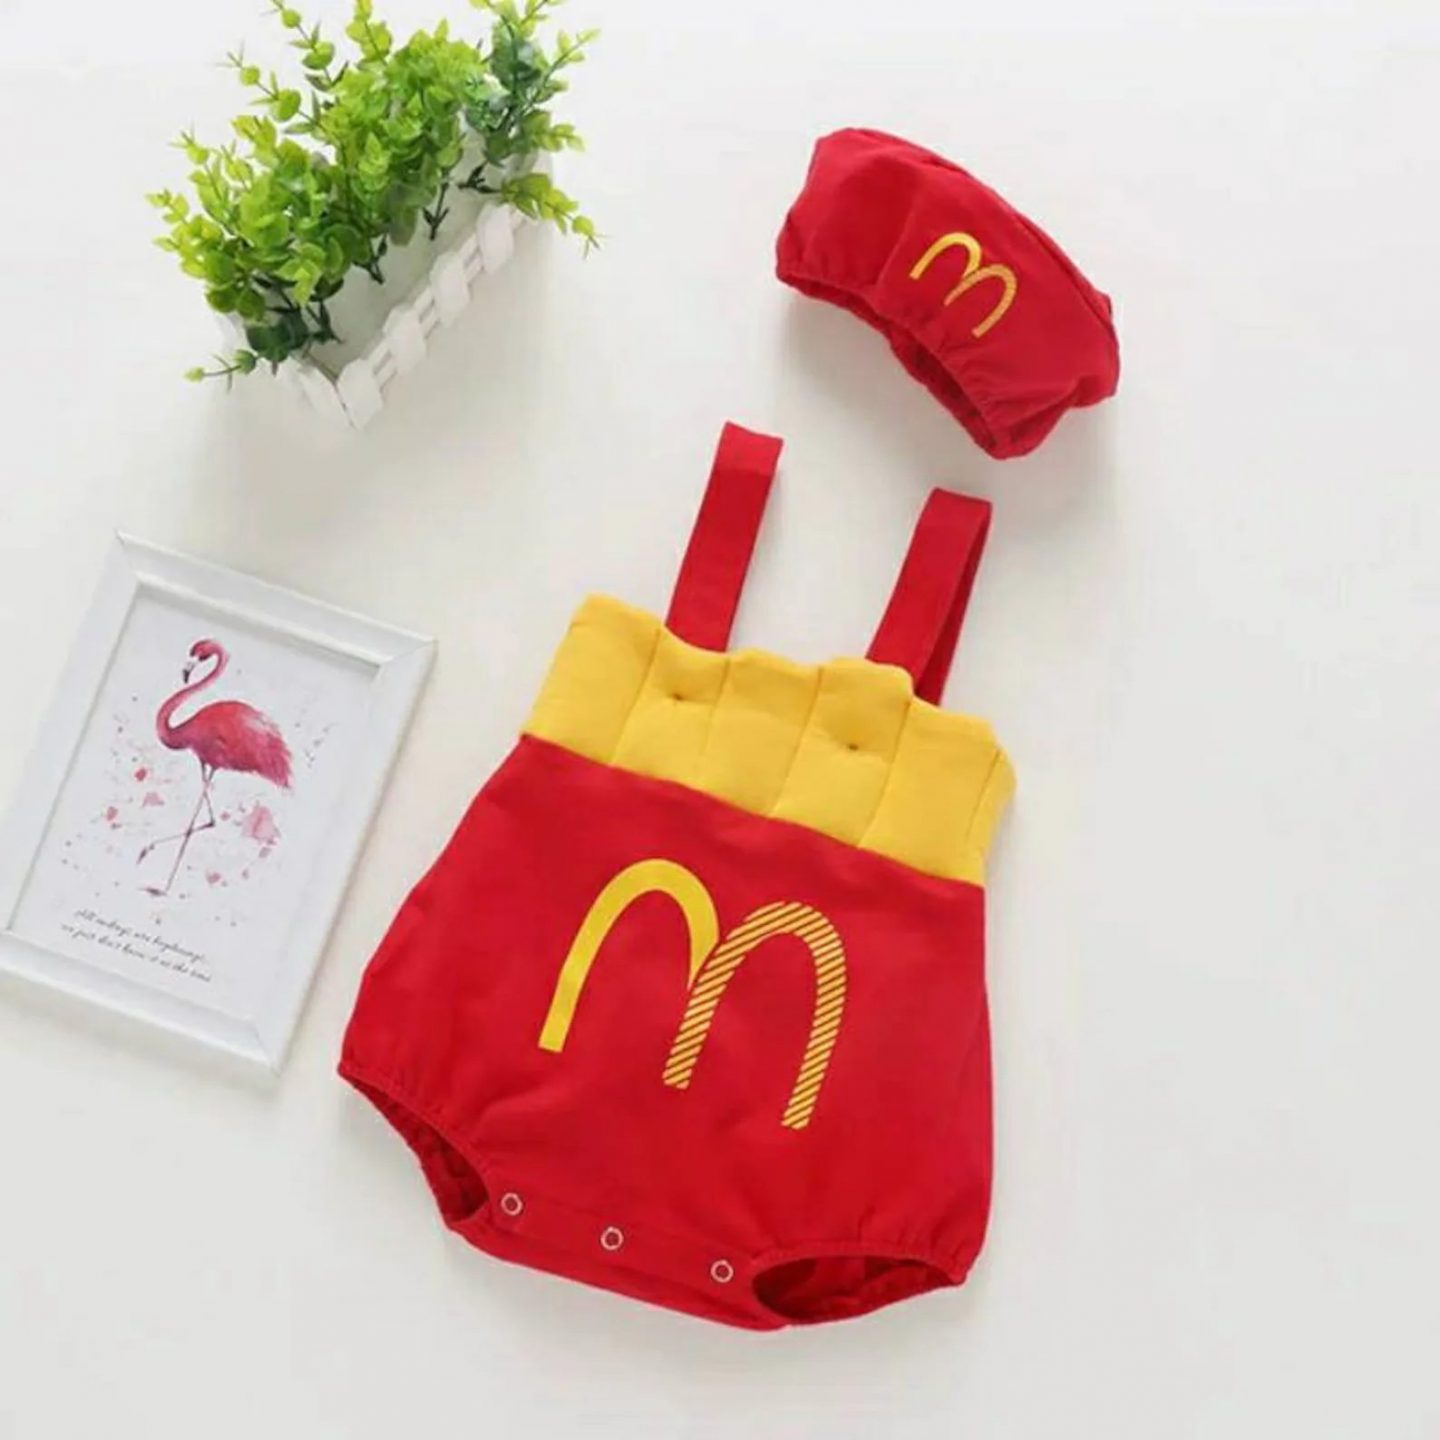 Cute McDonald's baby costume for photos